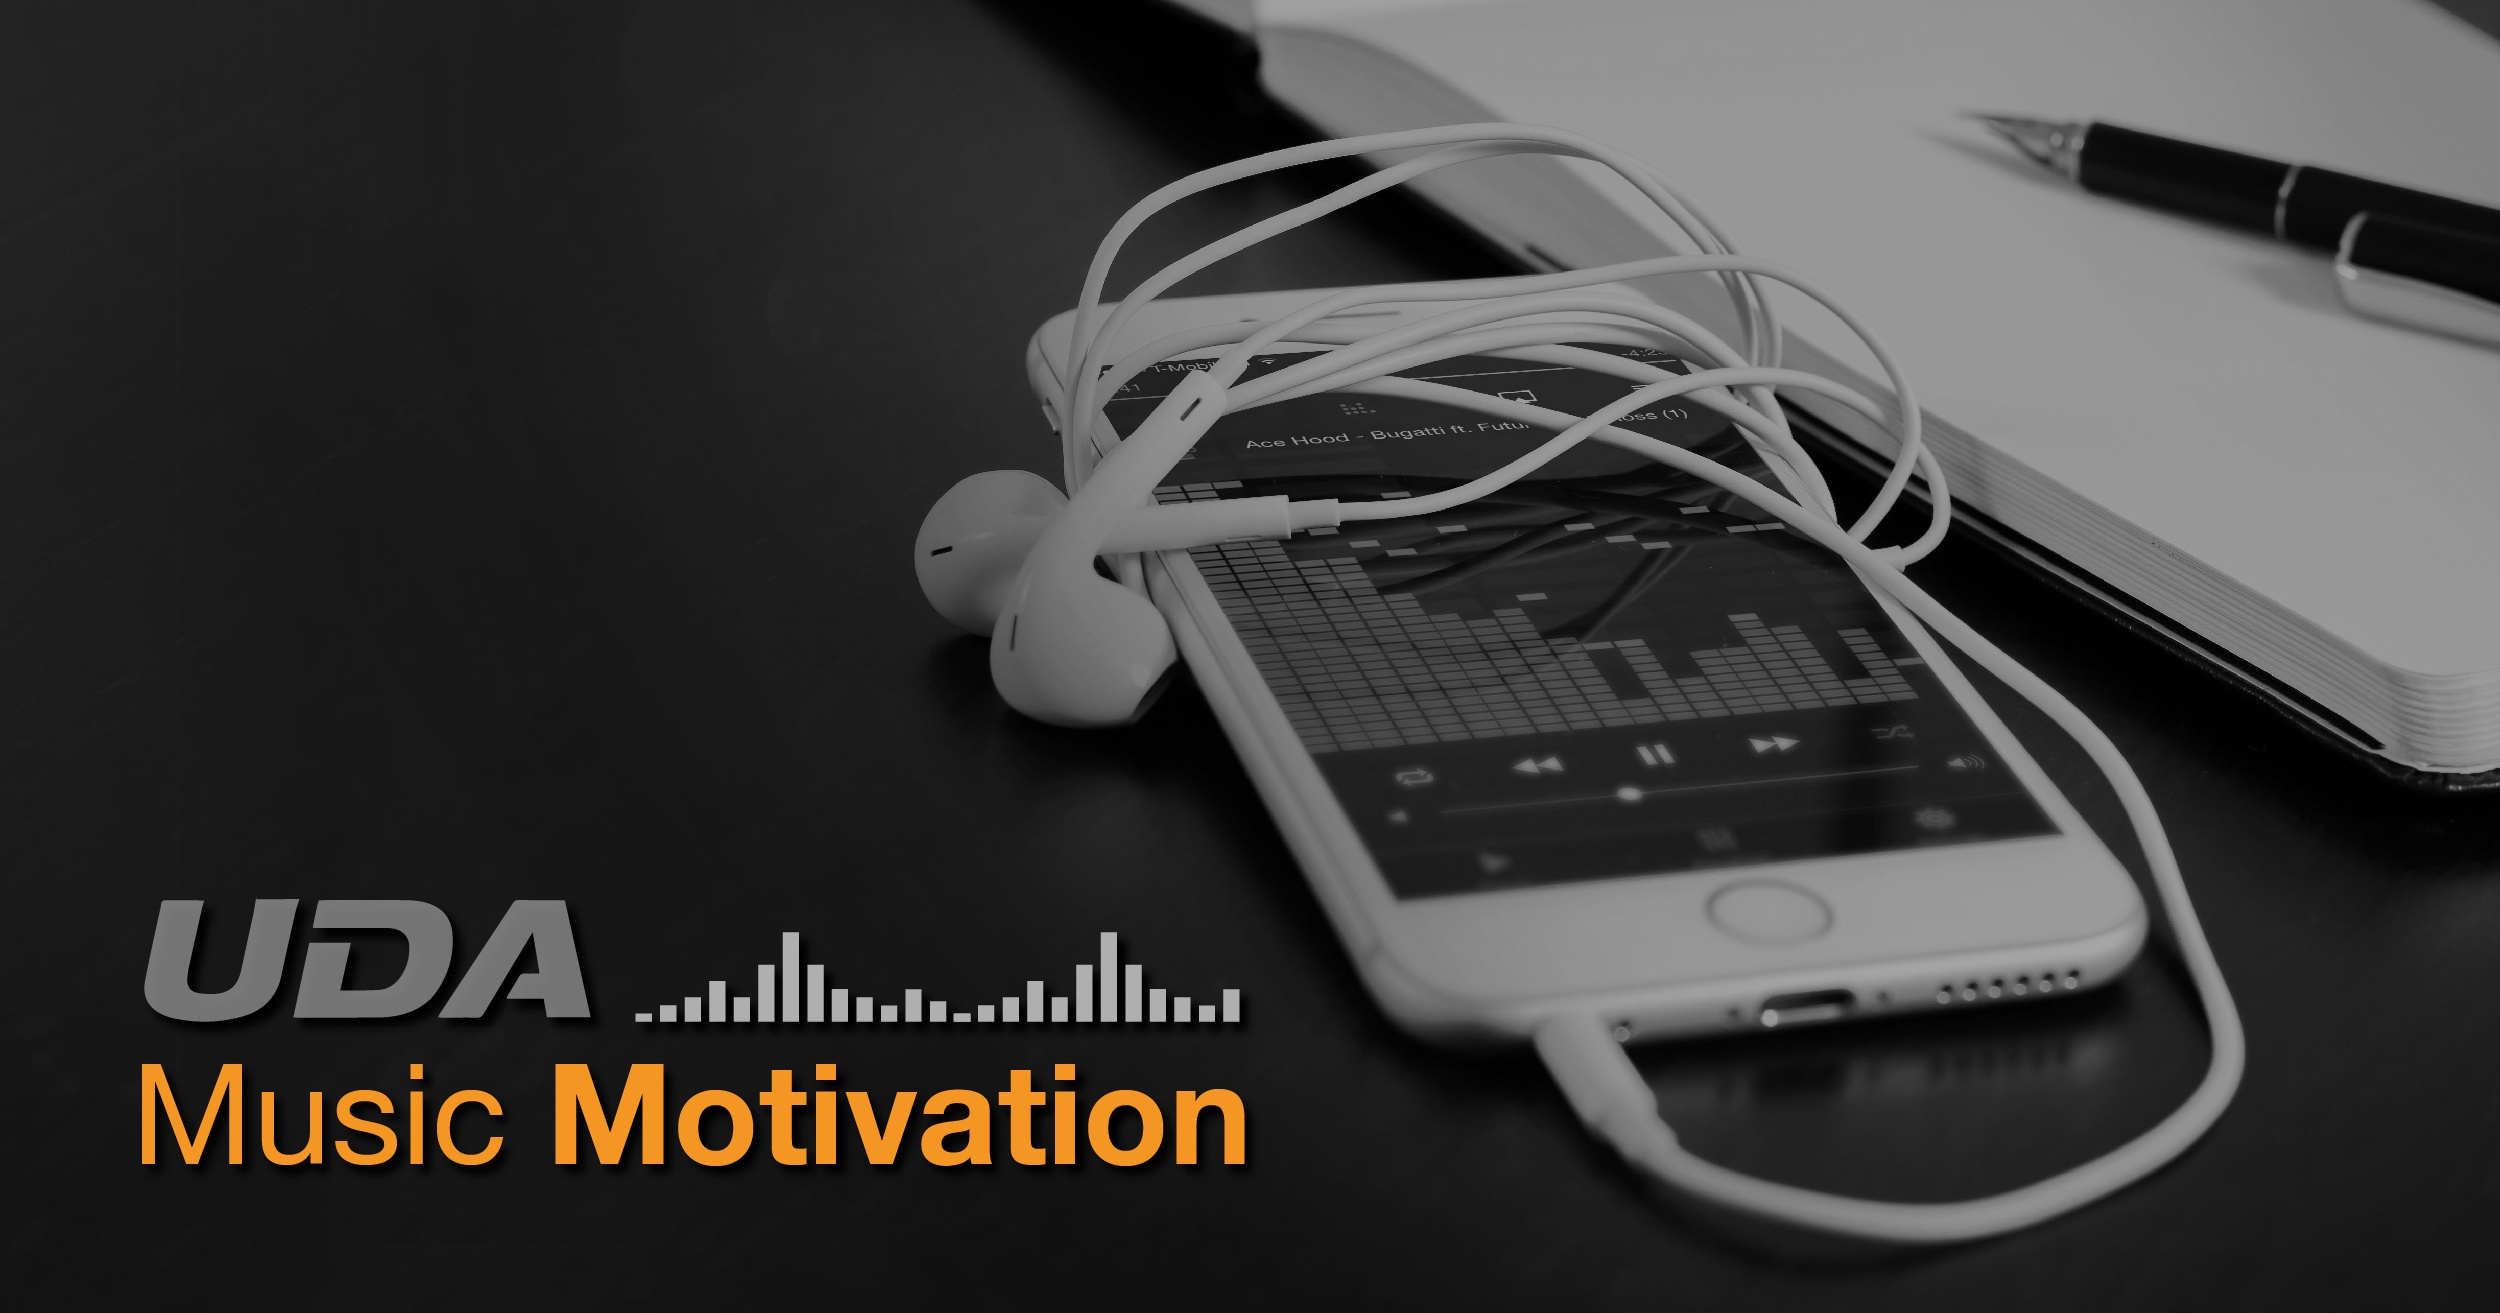 Music Motivation: Less Words, More Work